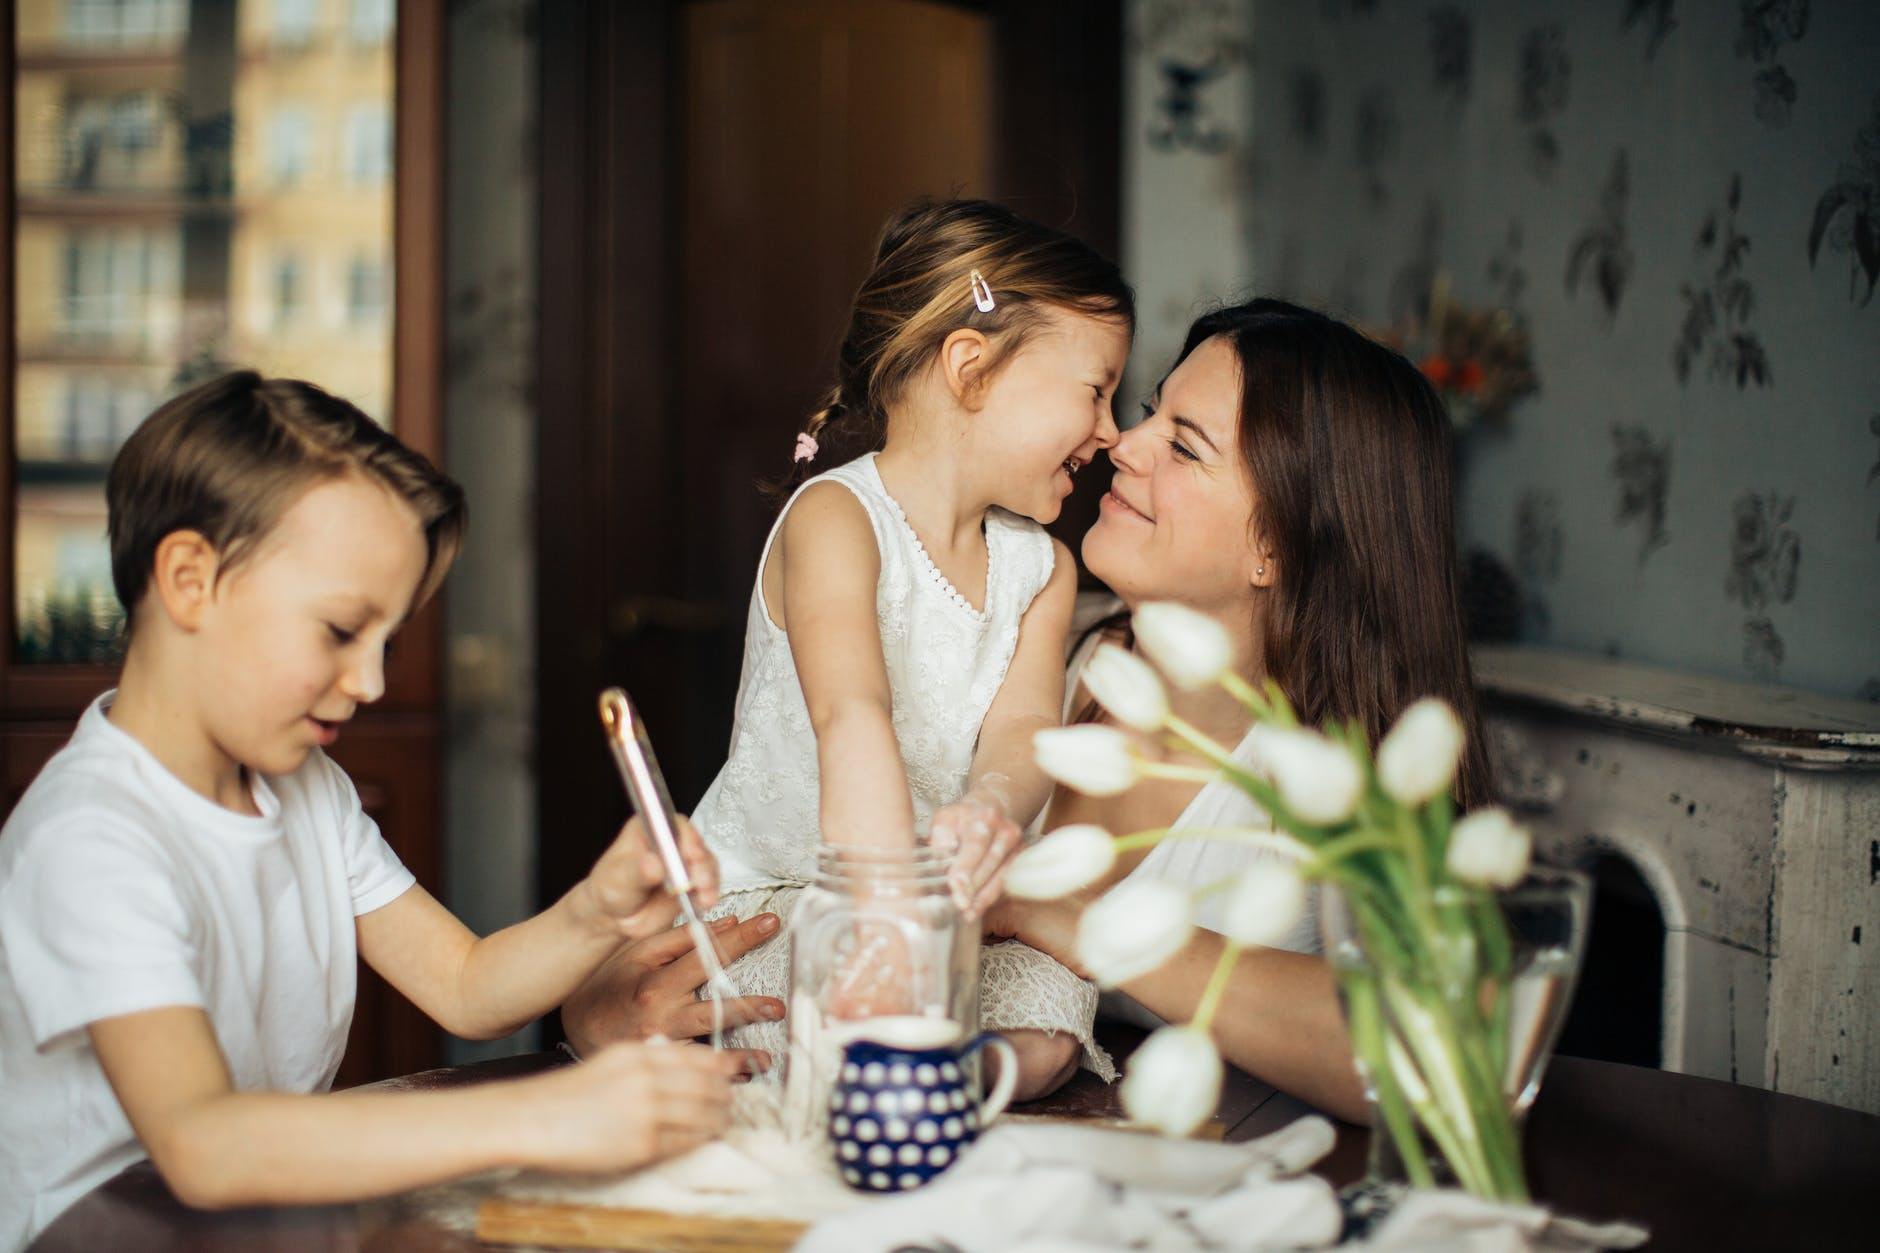 Mother and 2 children at breakfast table